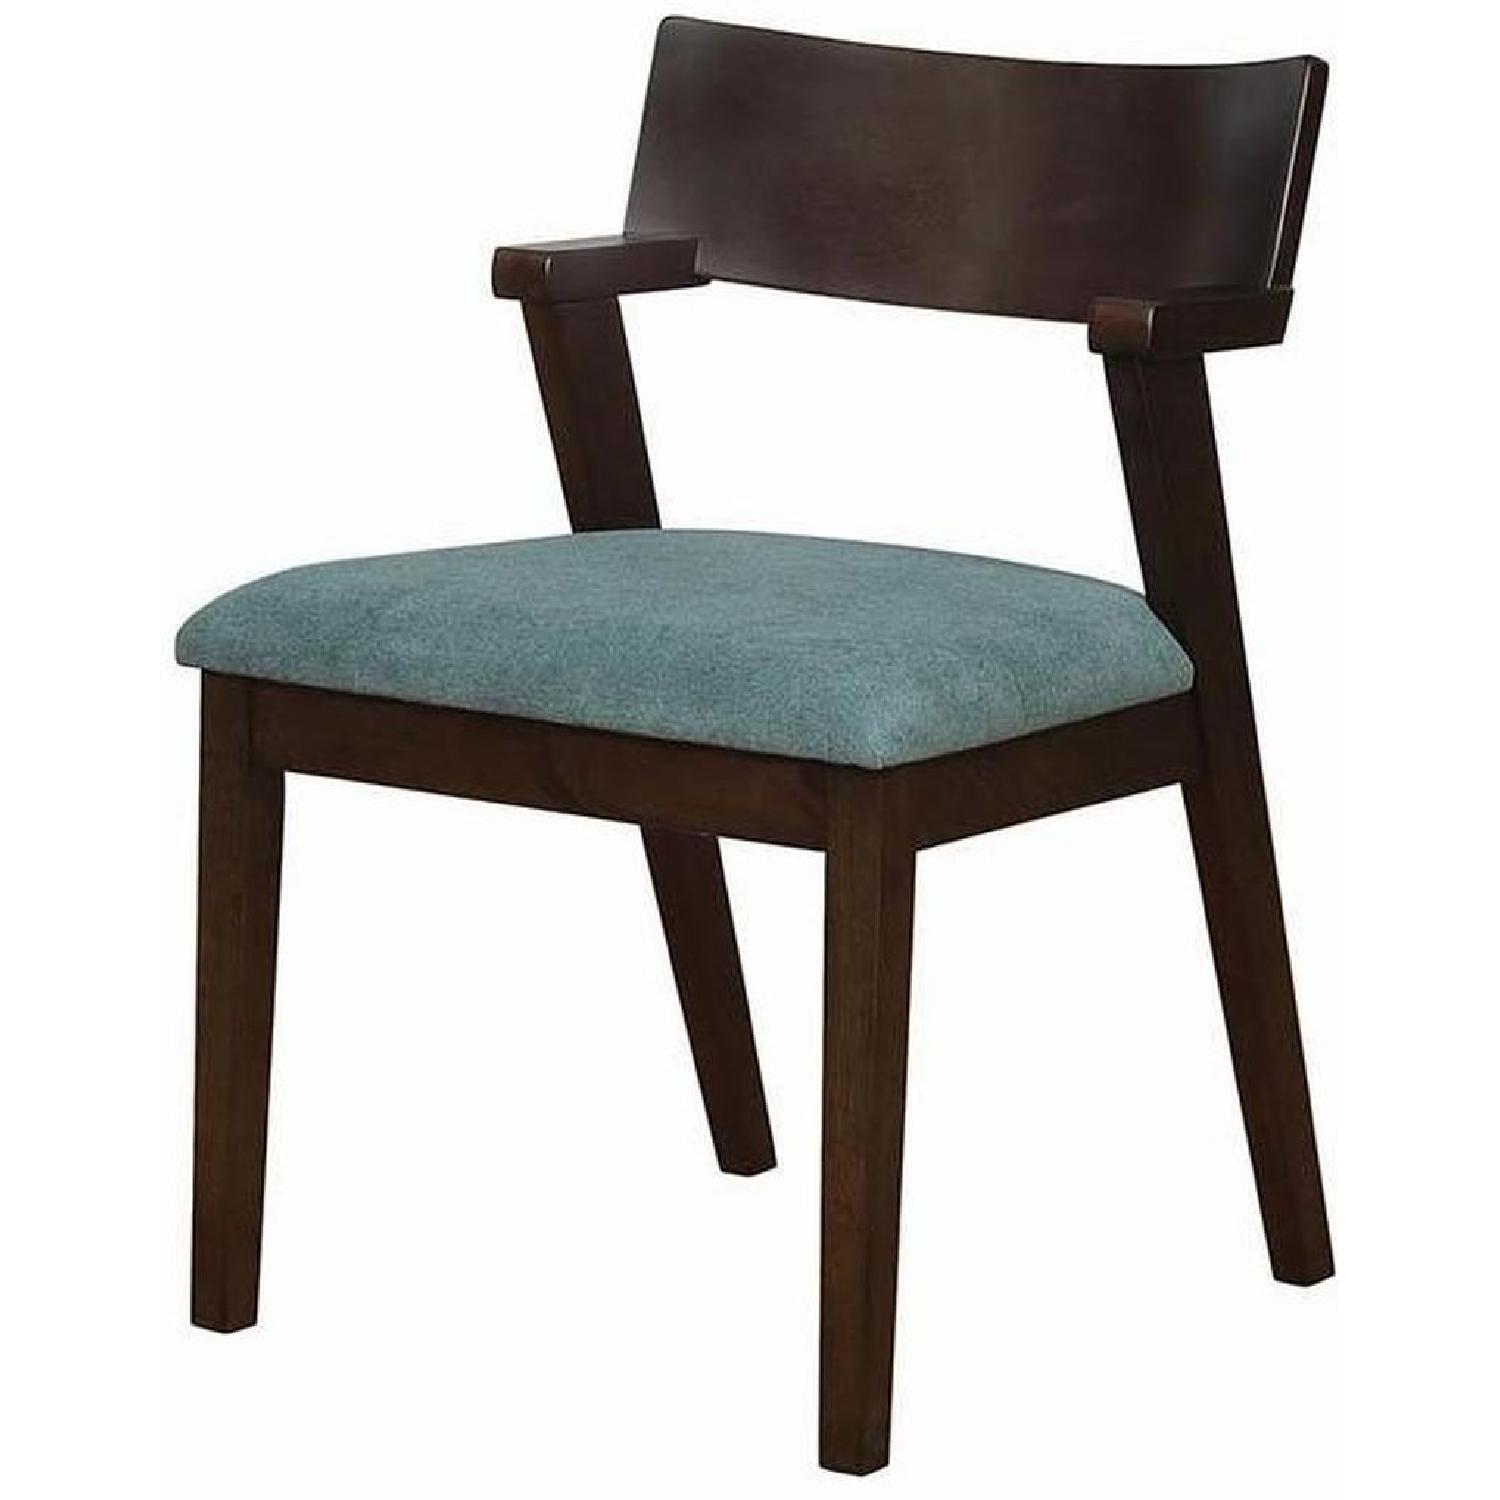 Mid Century Style Dining Chair w/ Teal Cushioned Seat - image-2